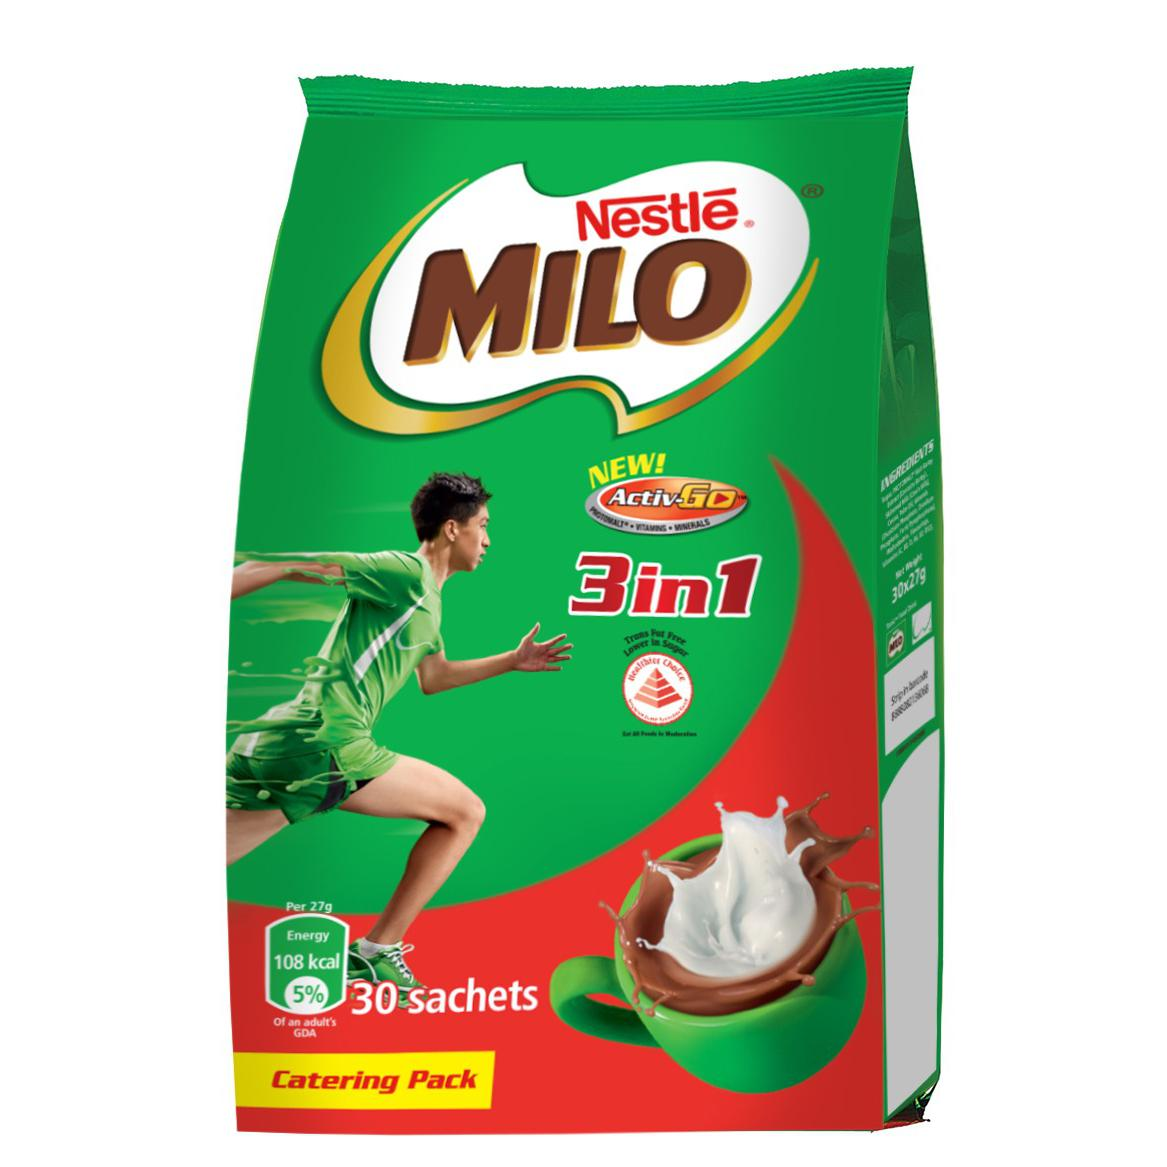 Nestle Milo 3 in 1 Activ-Go Catering Pack